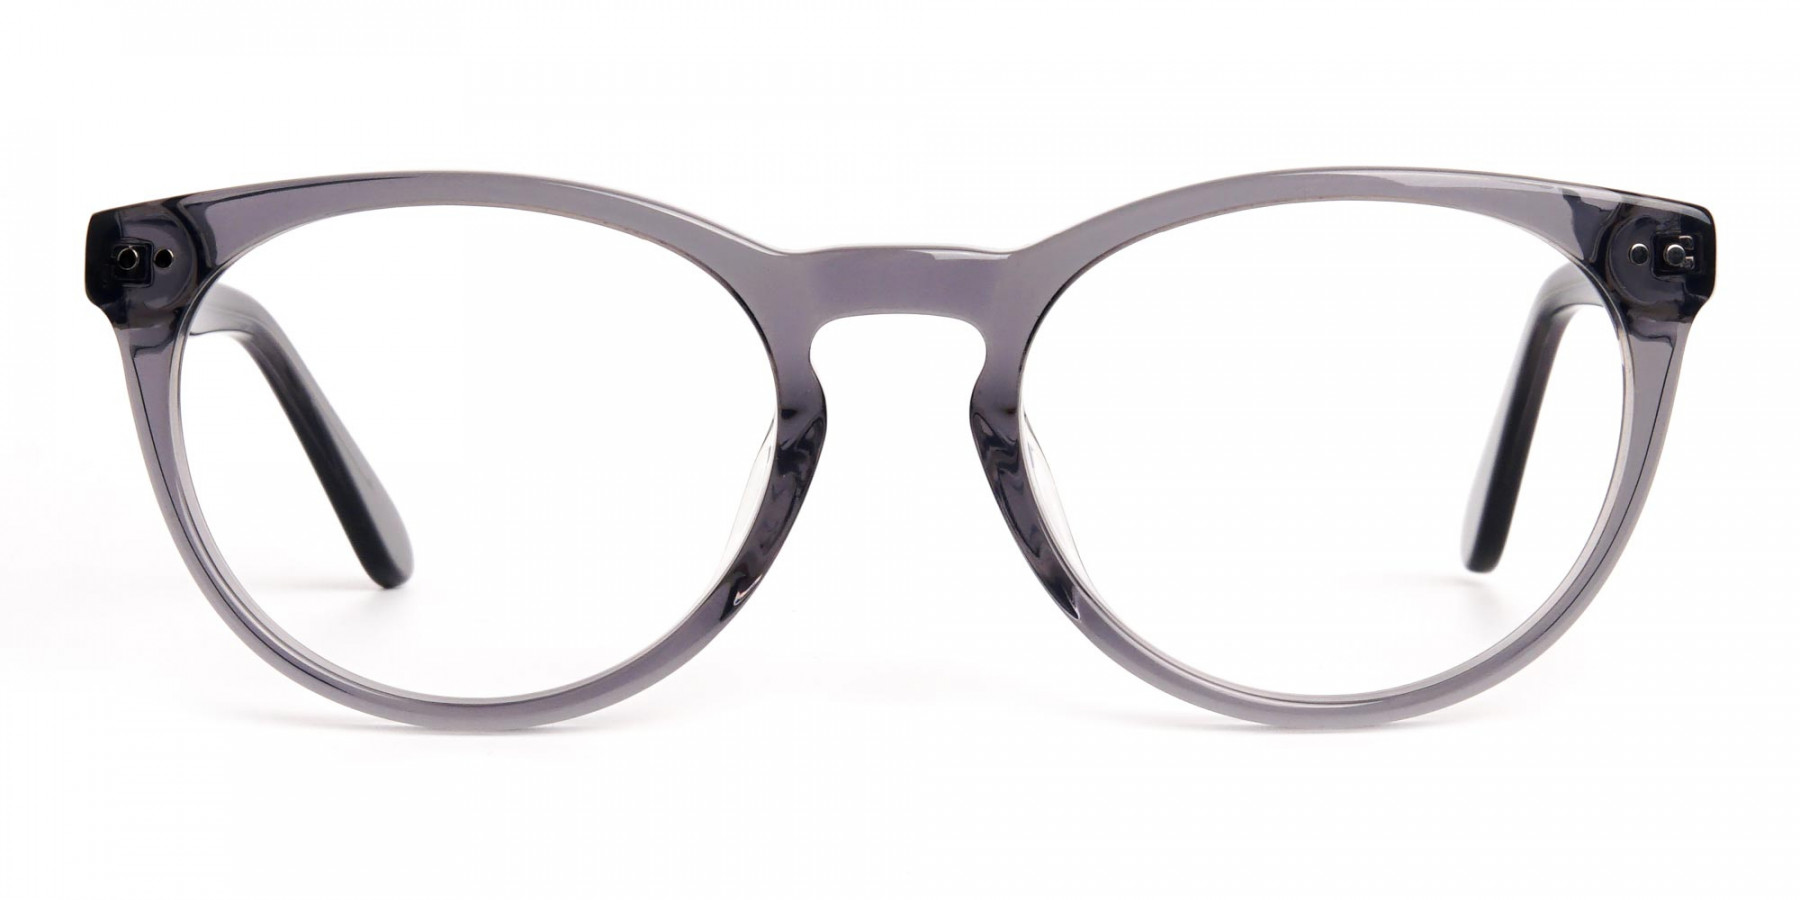 transparent-grey-round-full-rim-glasses-frames-1